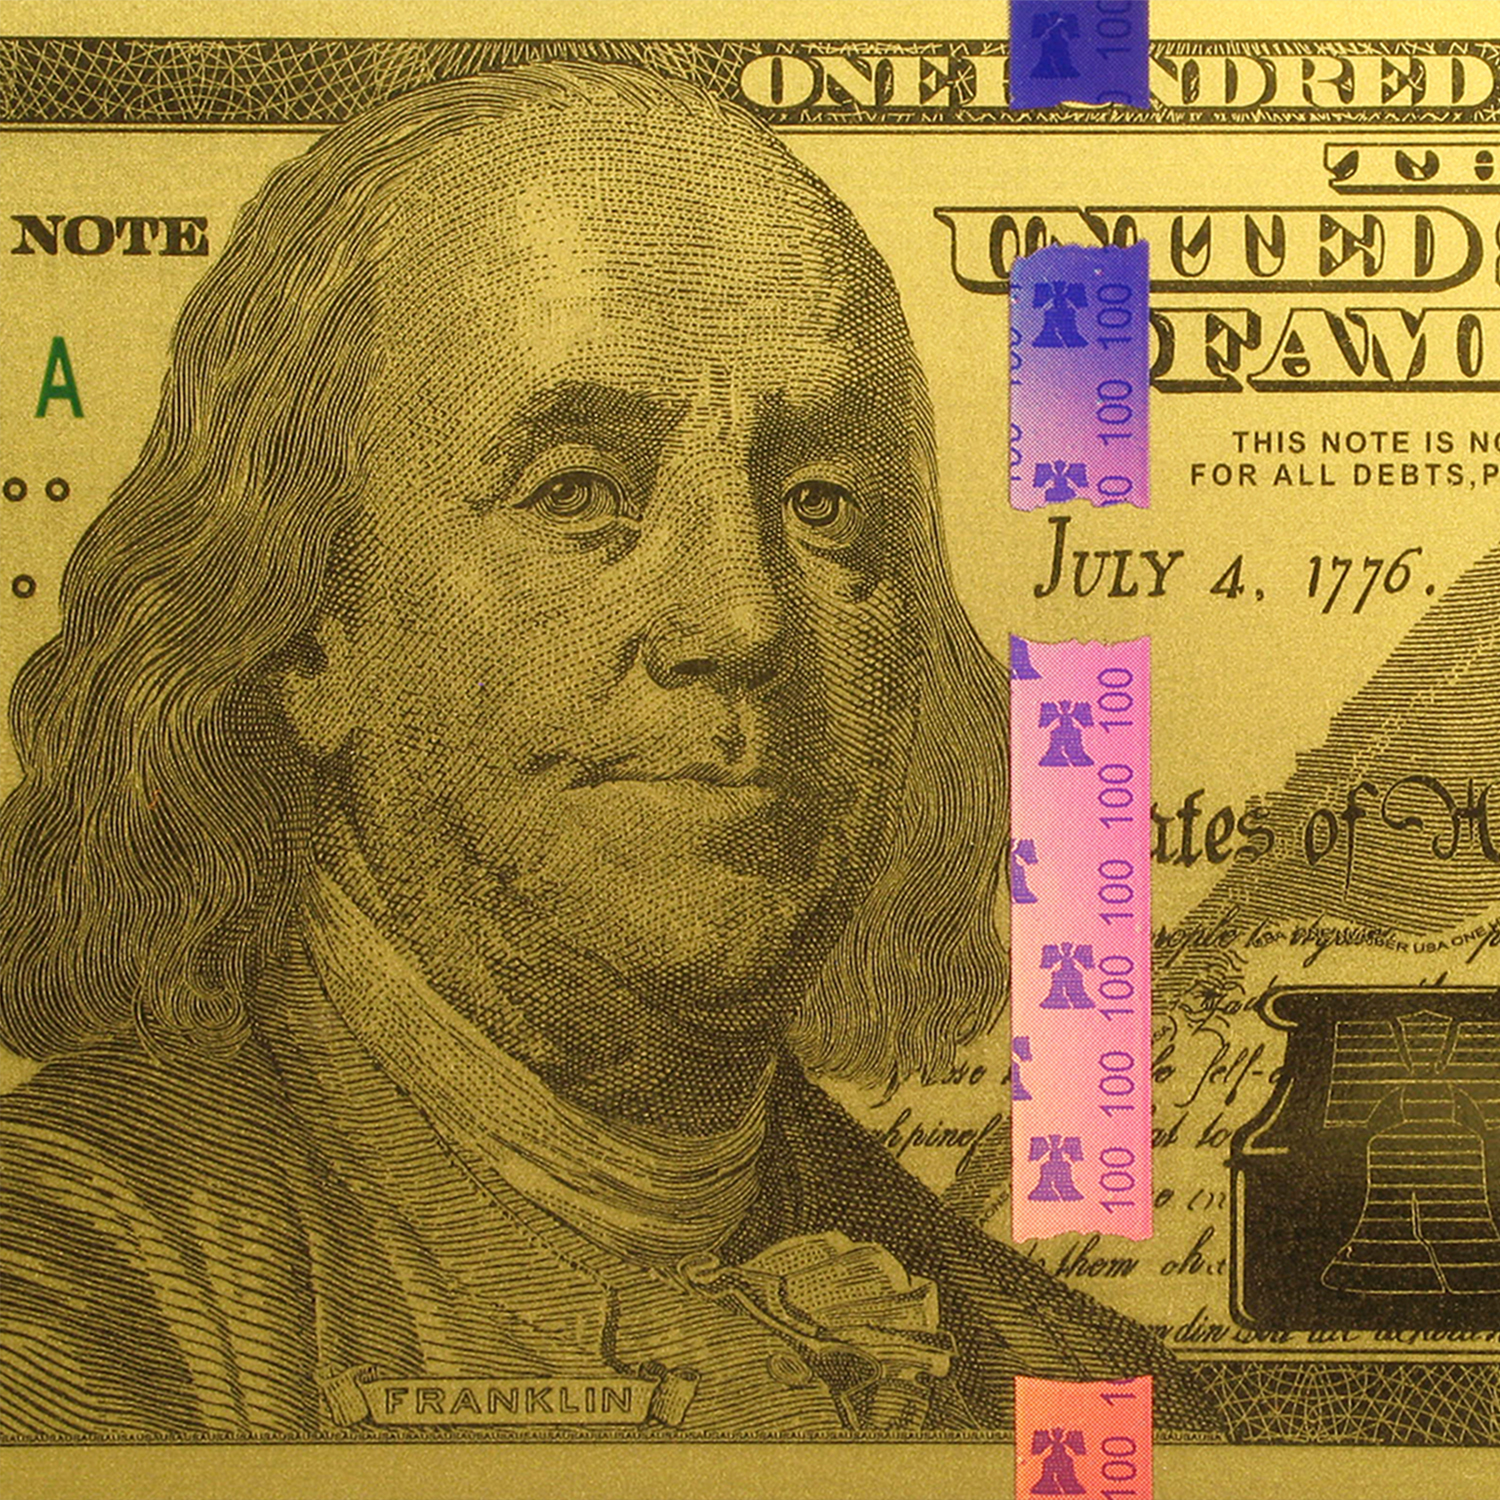 1 gram Gold Note - $100 Replica (Benjamin Franklin Design, 24K)